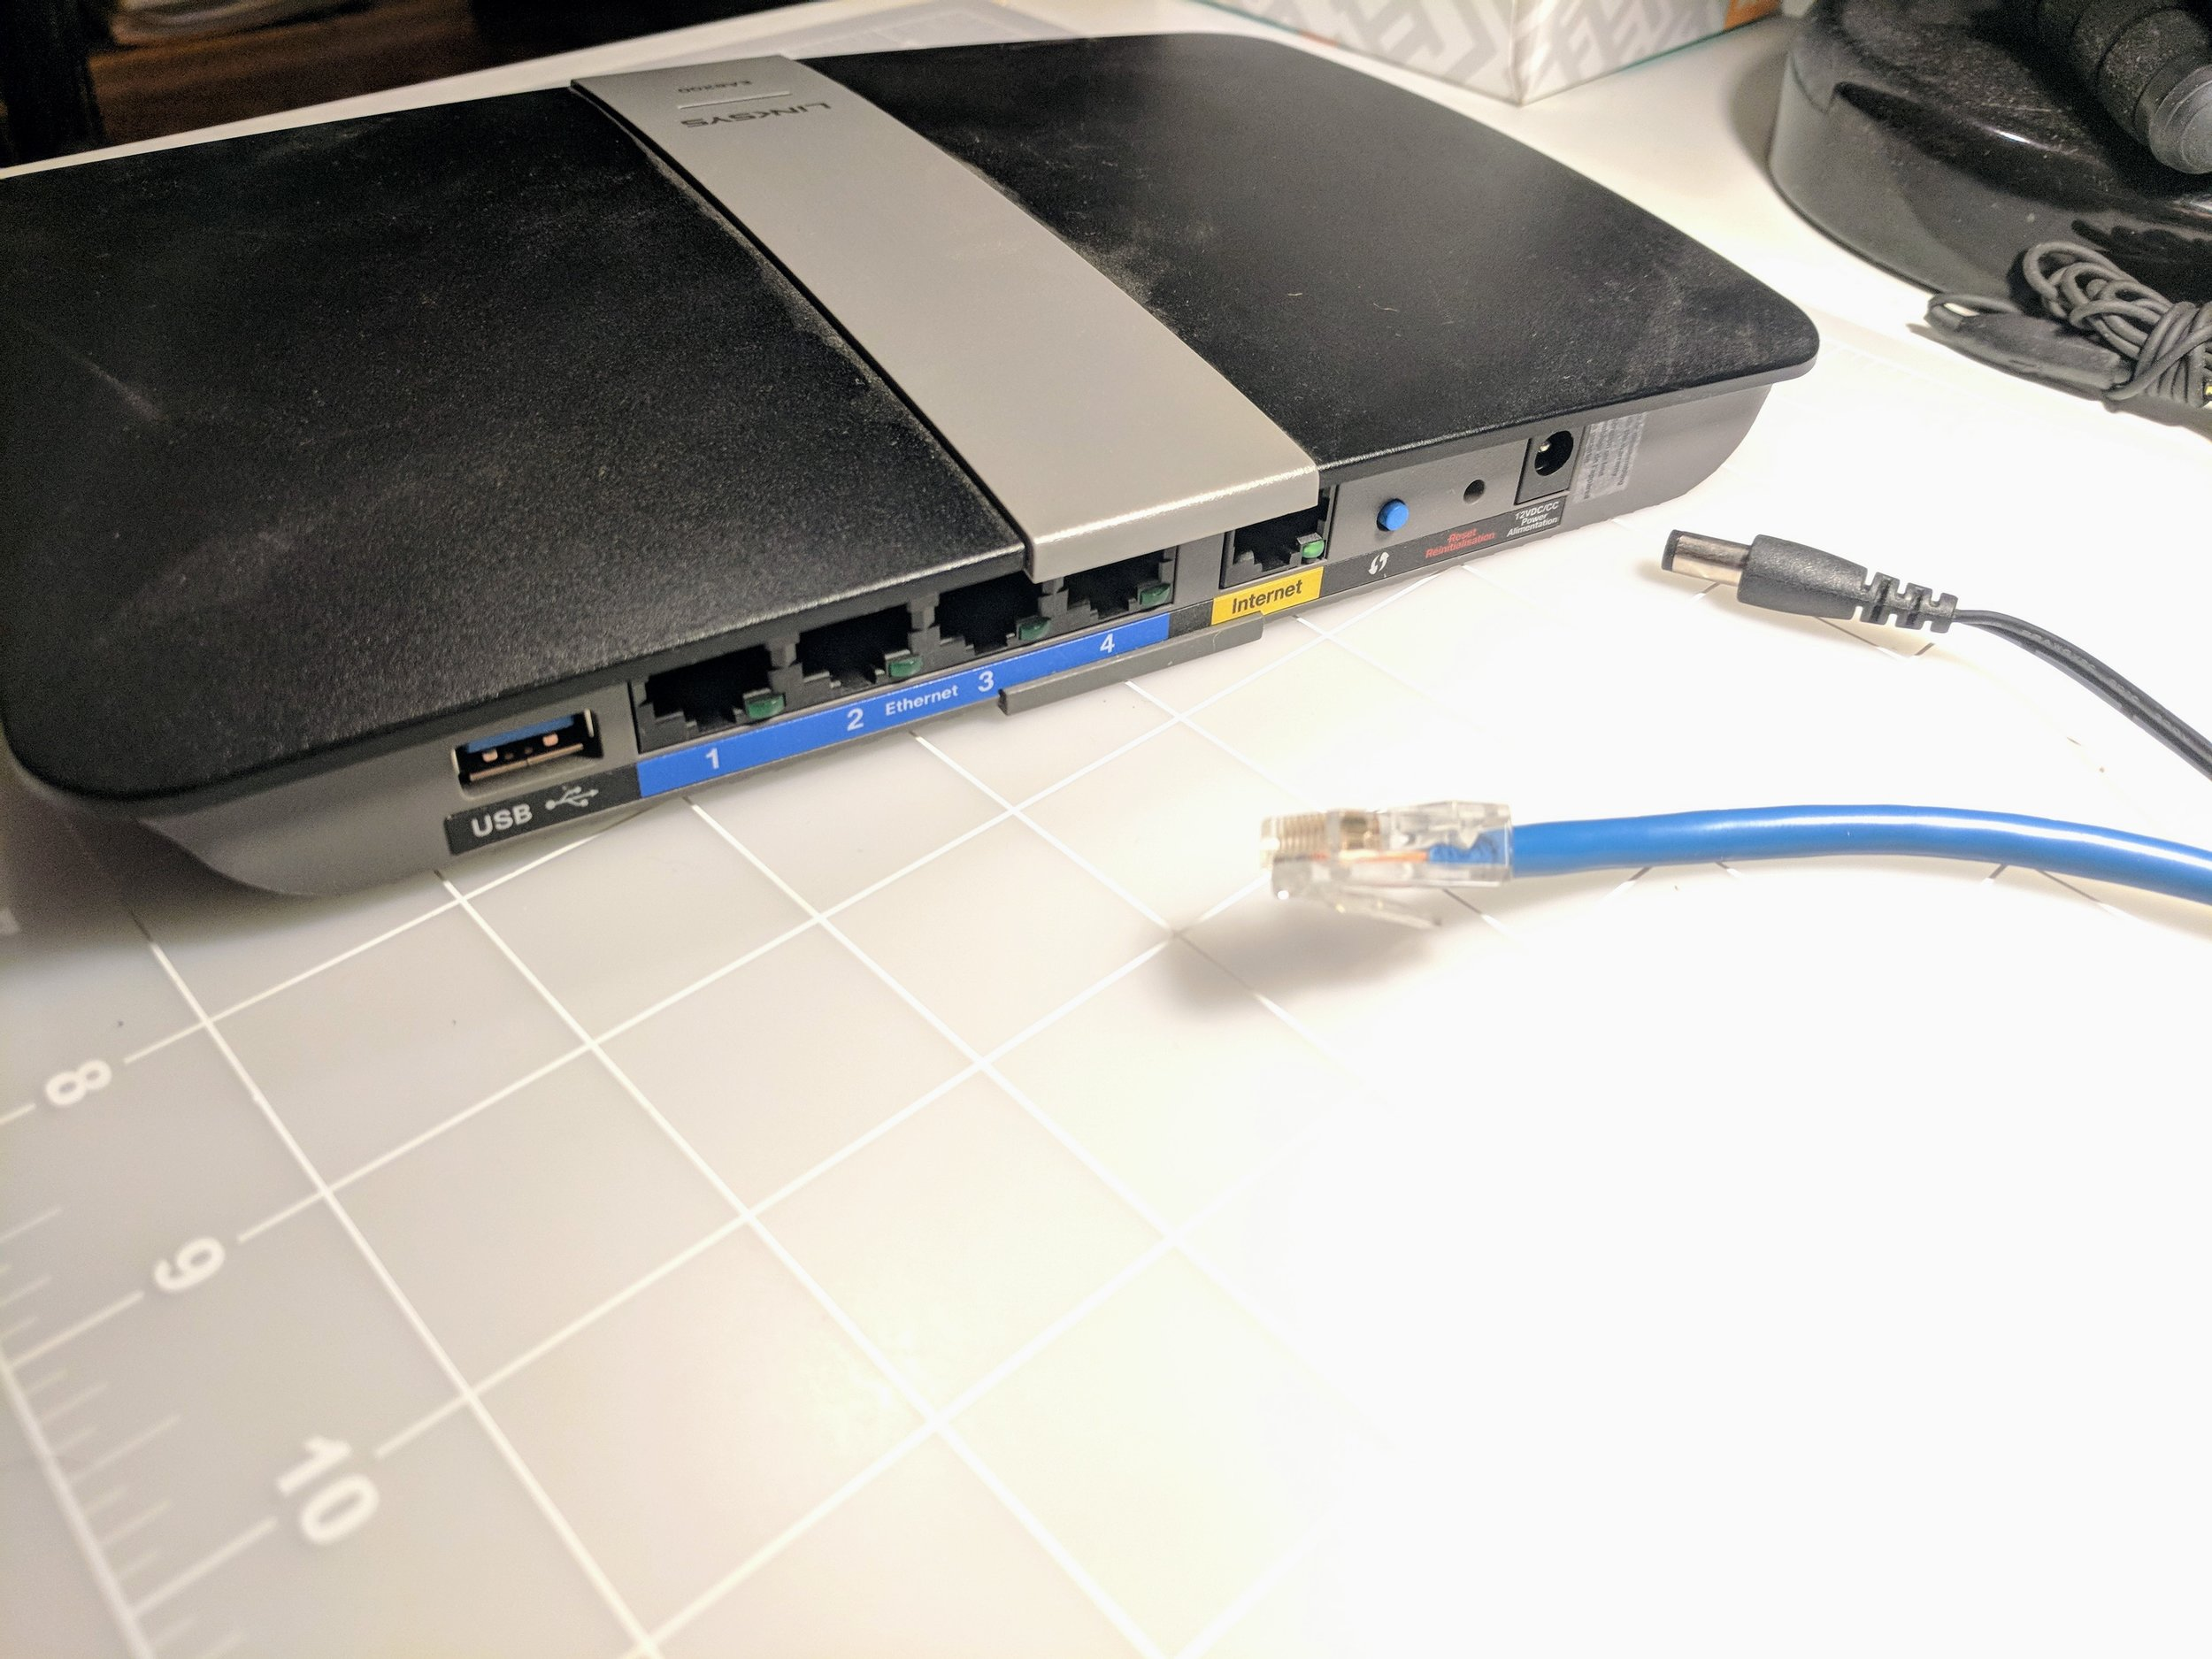 Perform a factory reset on your home router to avoid spreading malware.